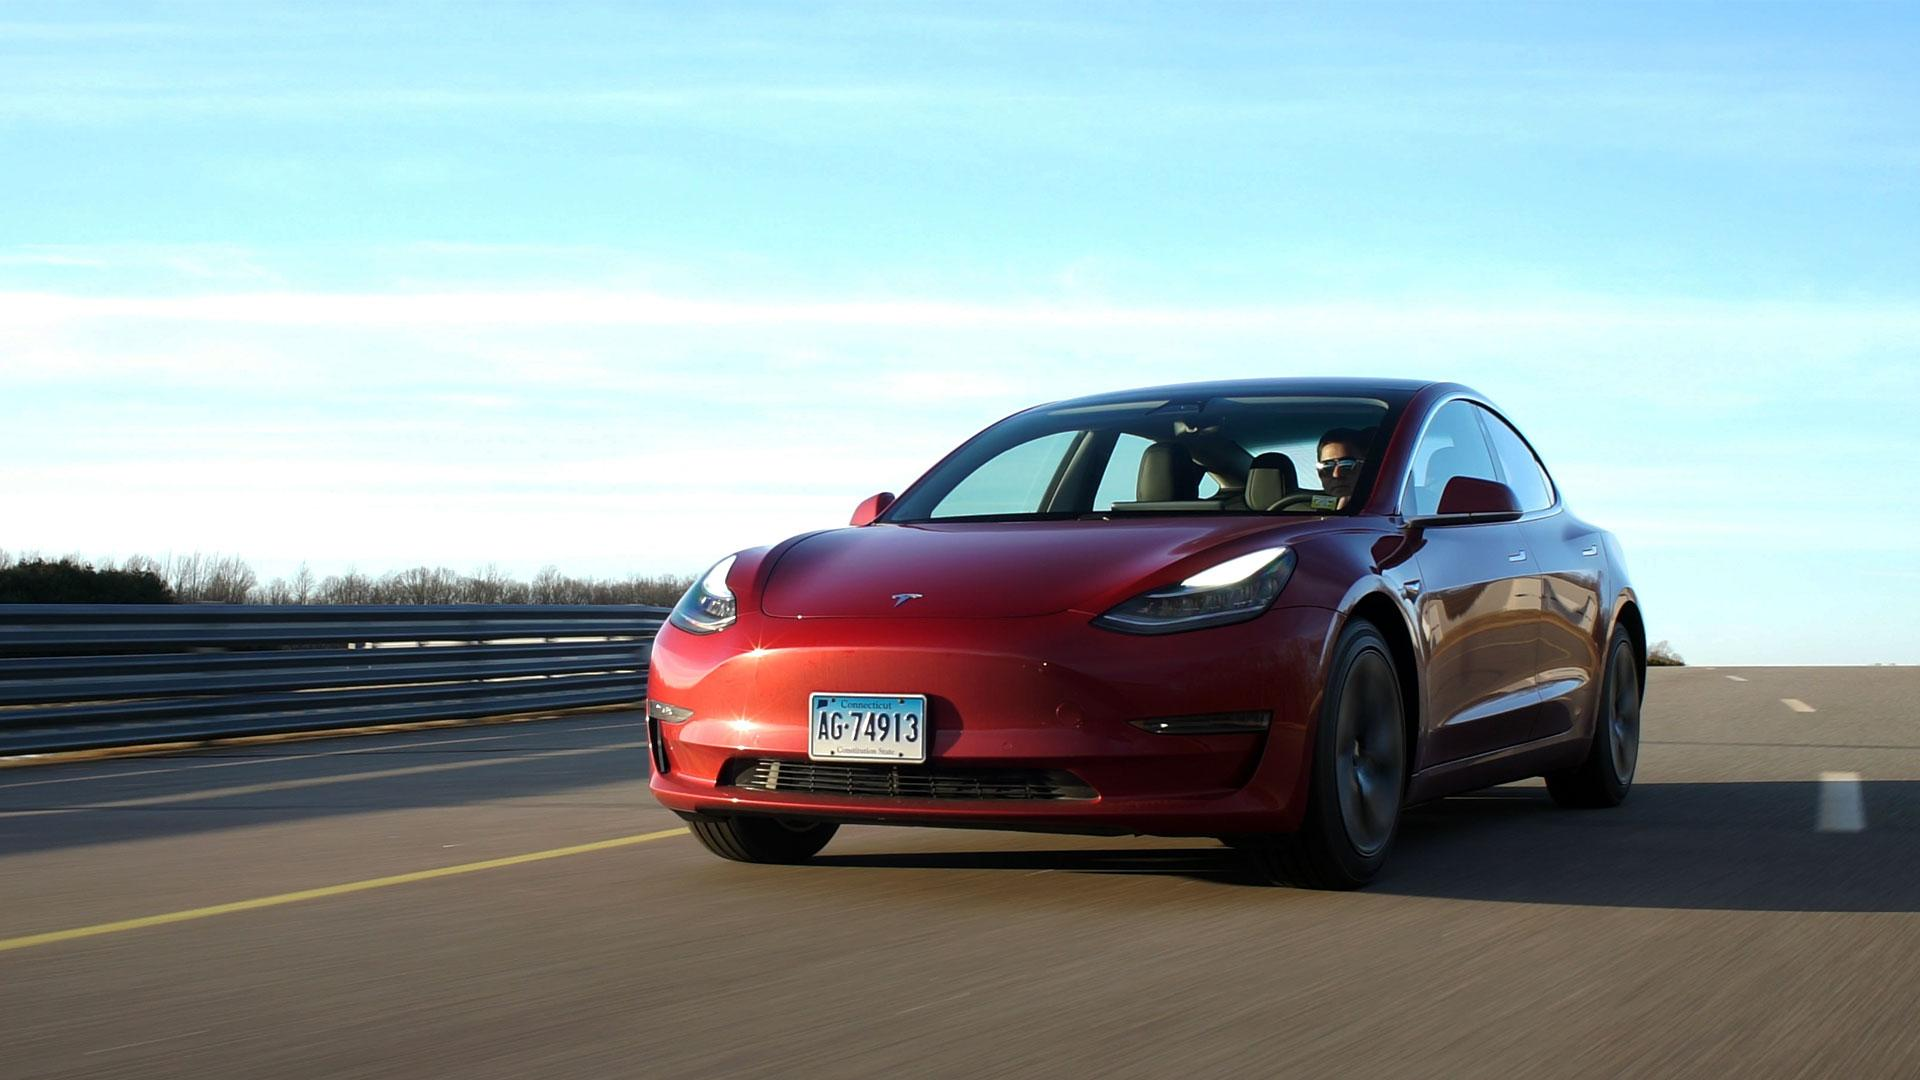 2018 Tesla Model 3 Reviews, Ratings, Prices - Consumer Reports